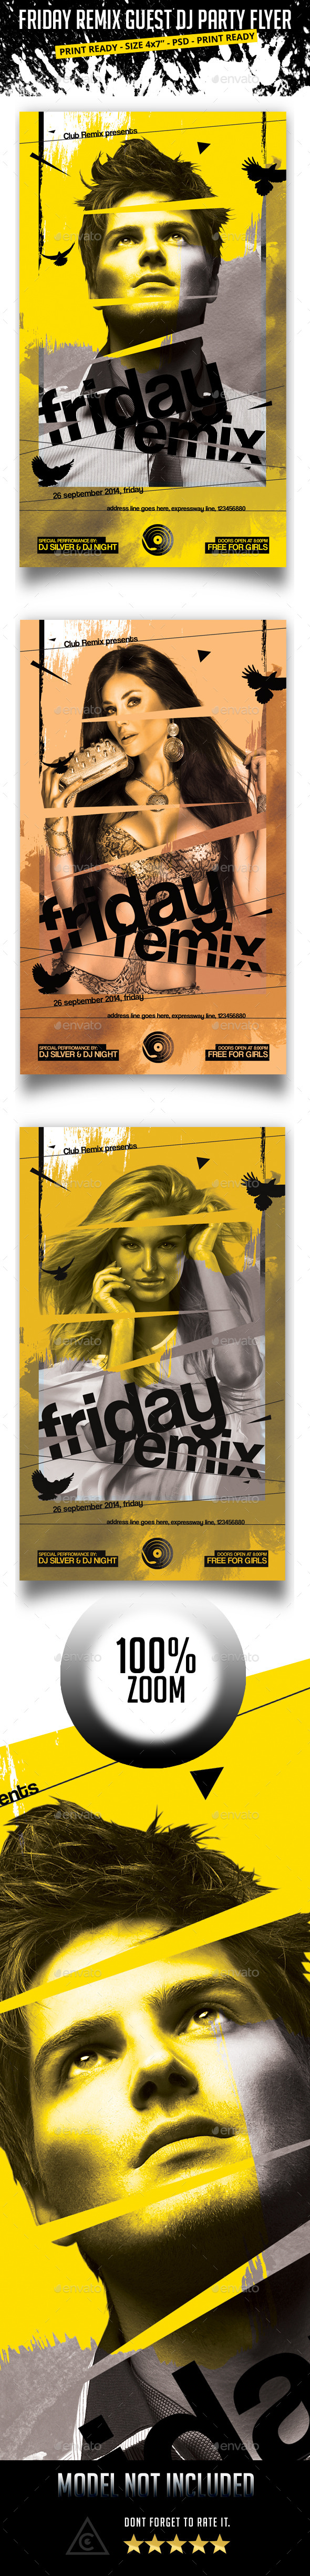 GraphicRiver Friday Remix Guest Dj Party Flyer 9084271